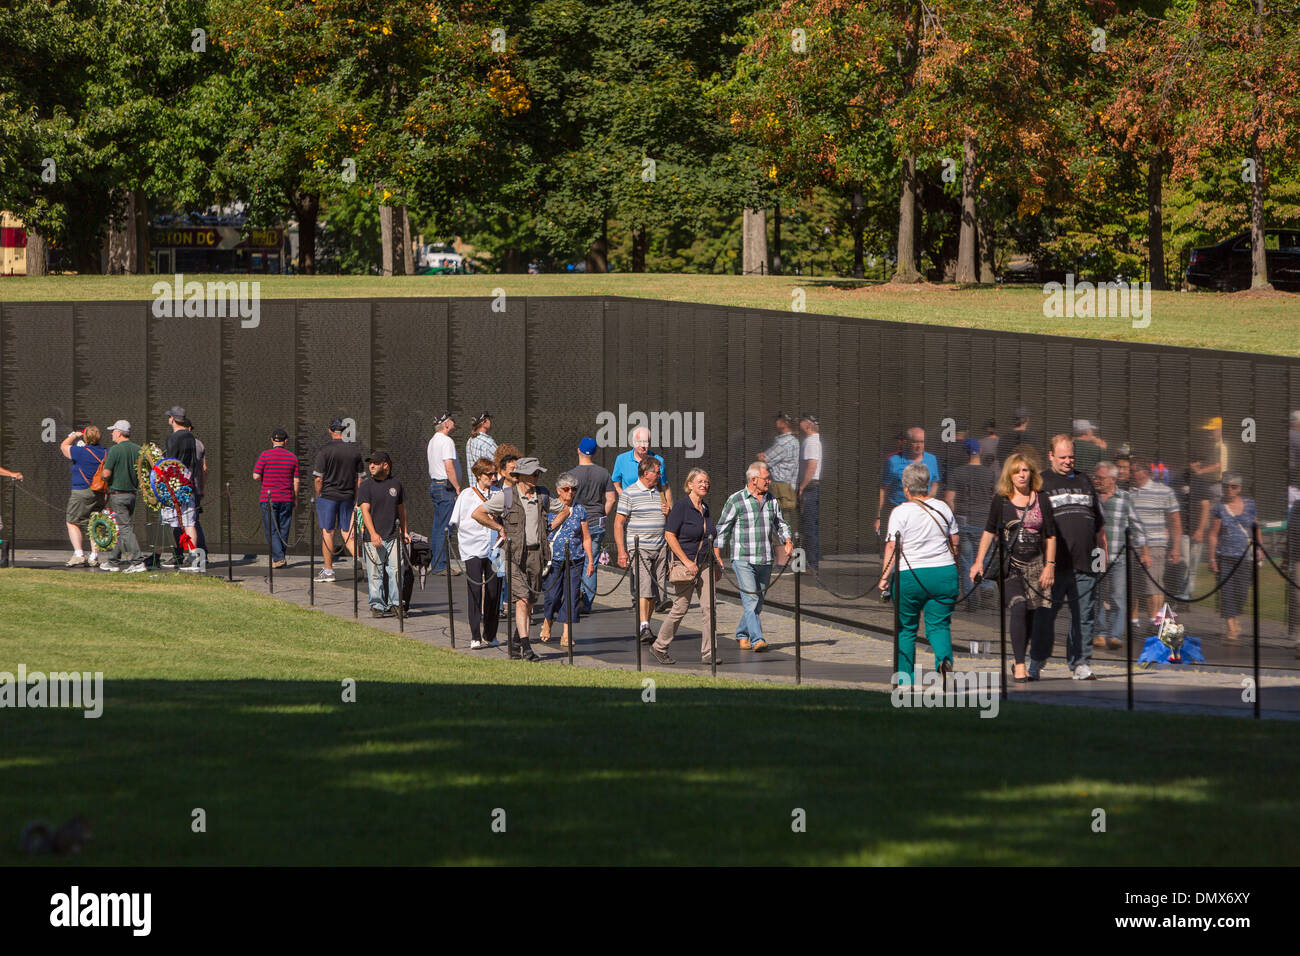 WASHINGTON, DC, USA - Vietnam Veterans Memorial. - Stock Image